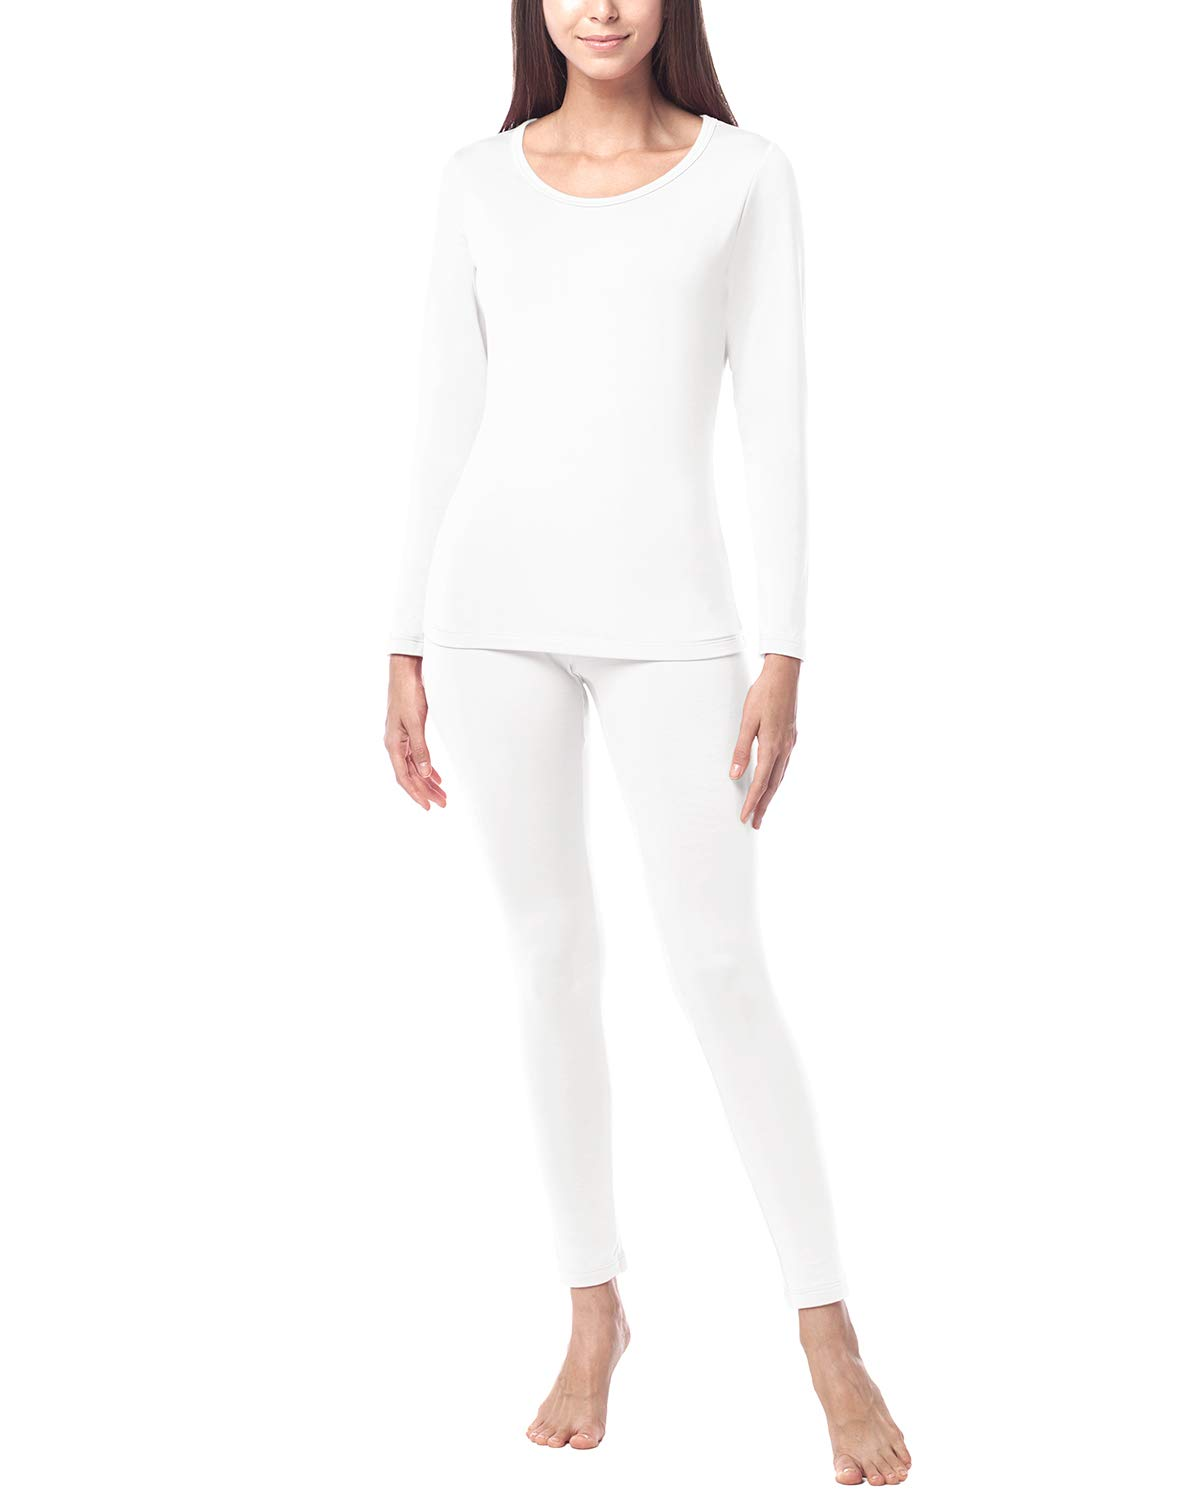 LAPASA Women's Lightweight Thermal Underwear Long John Set Fleece Lined Base Layer Top & Bottom L17 (Medium, White) by LAPASA